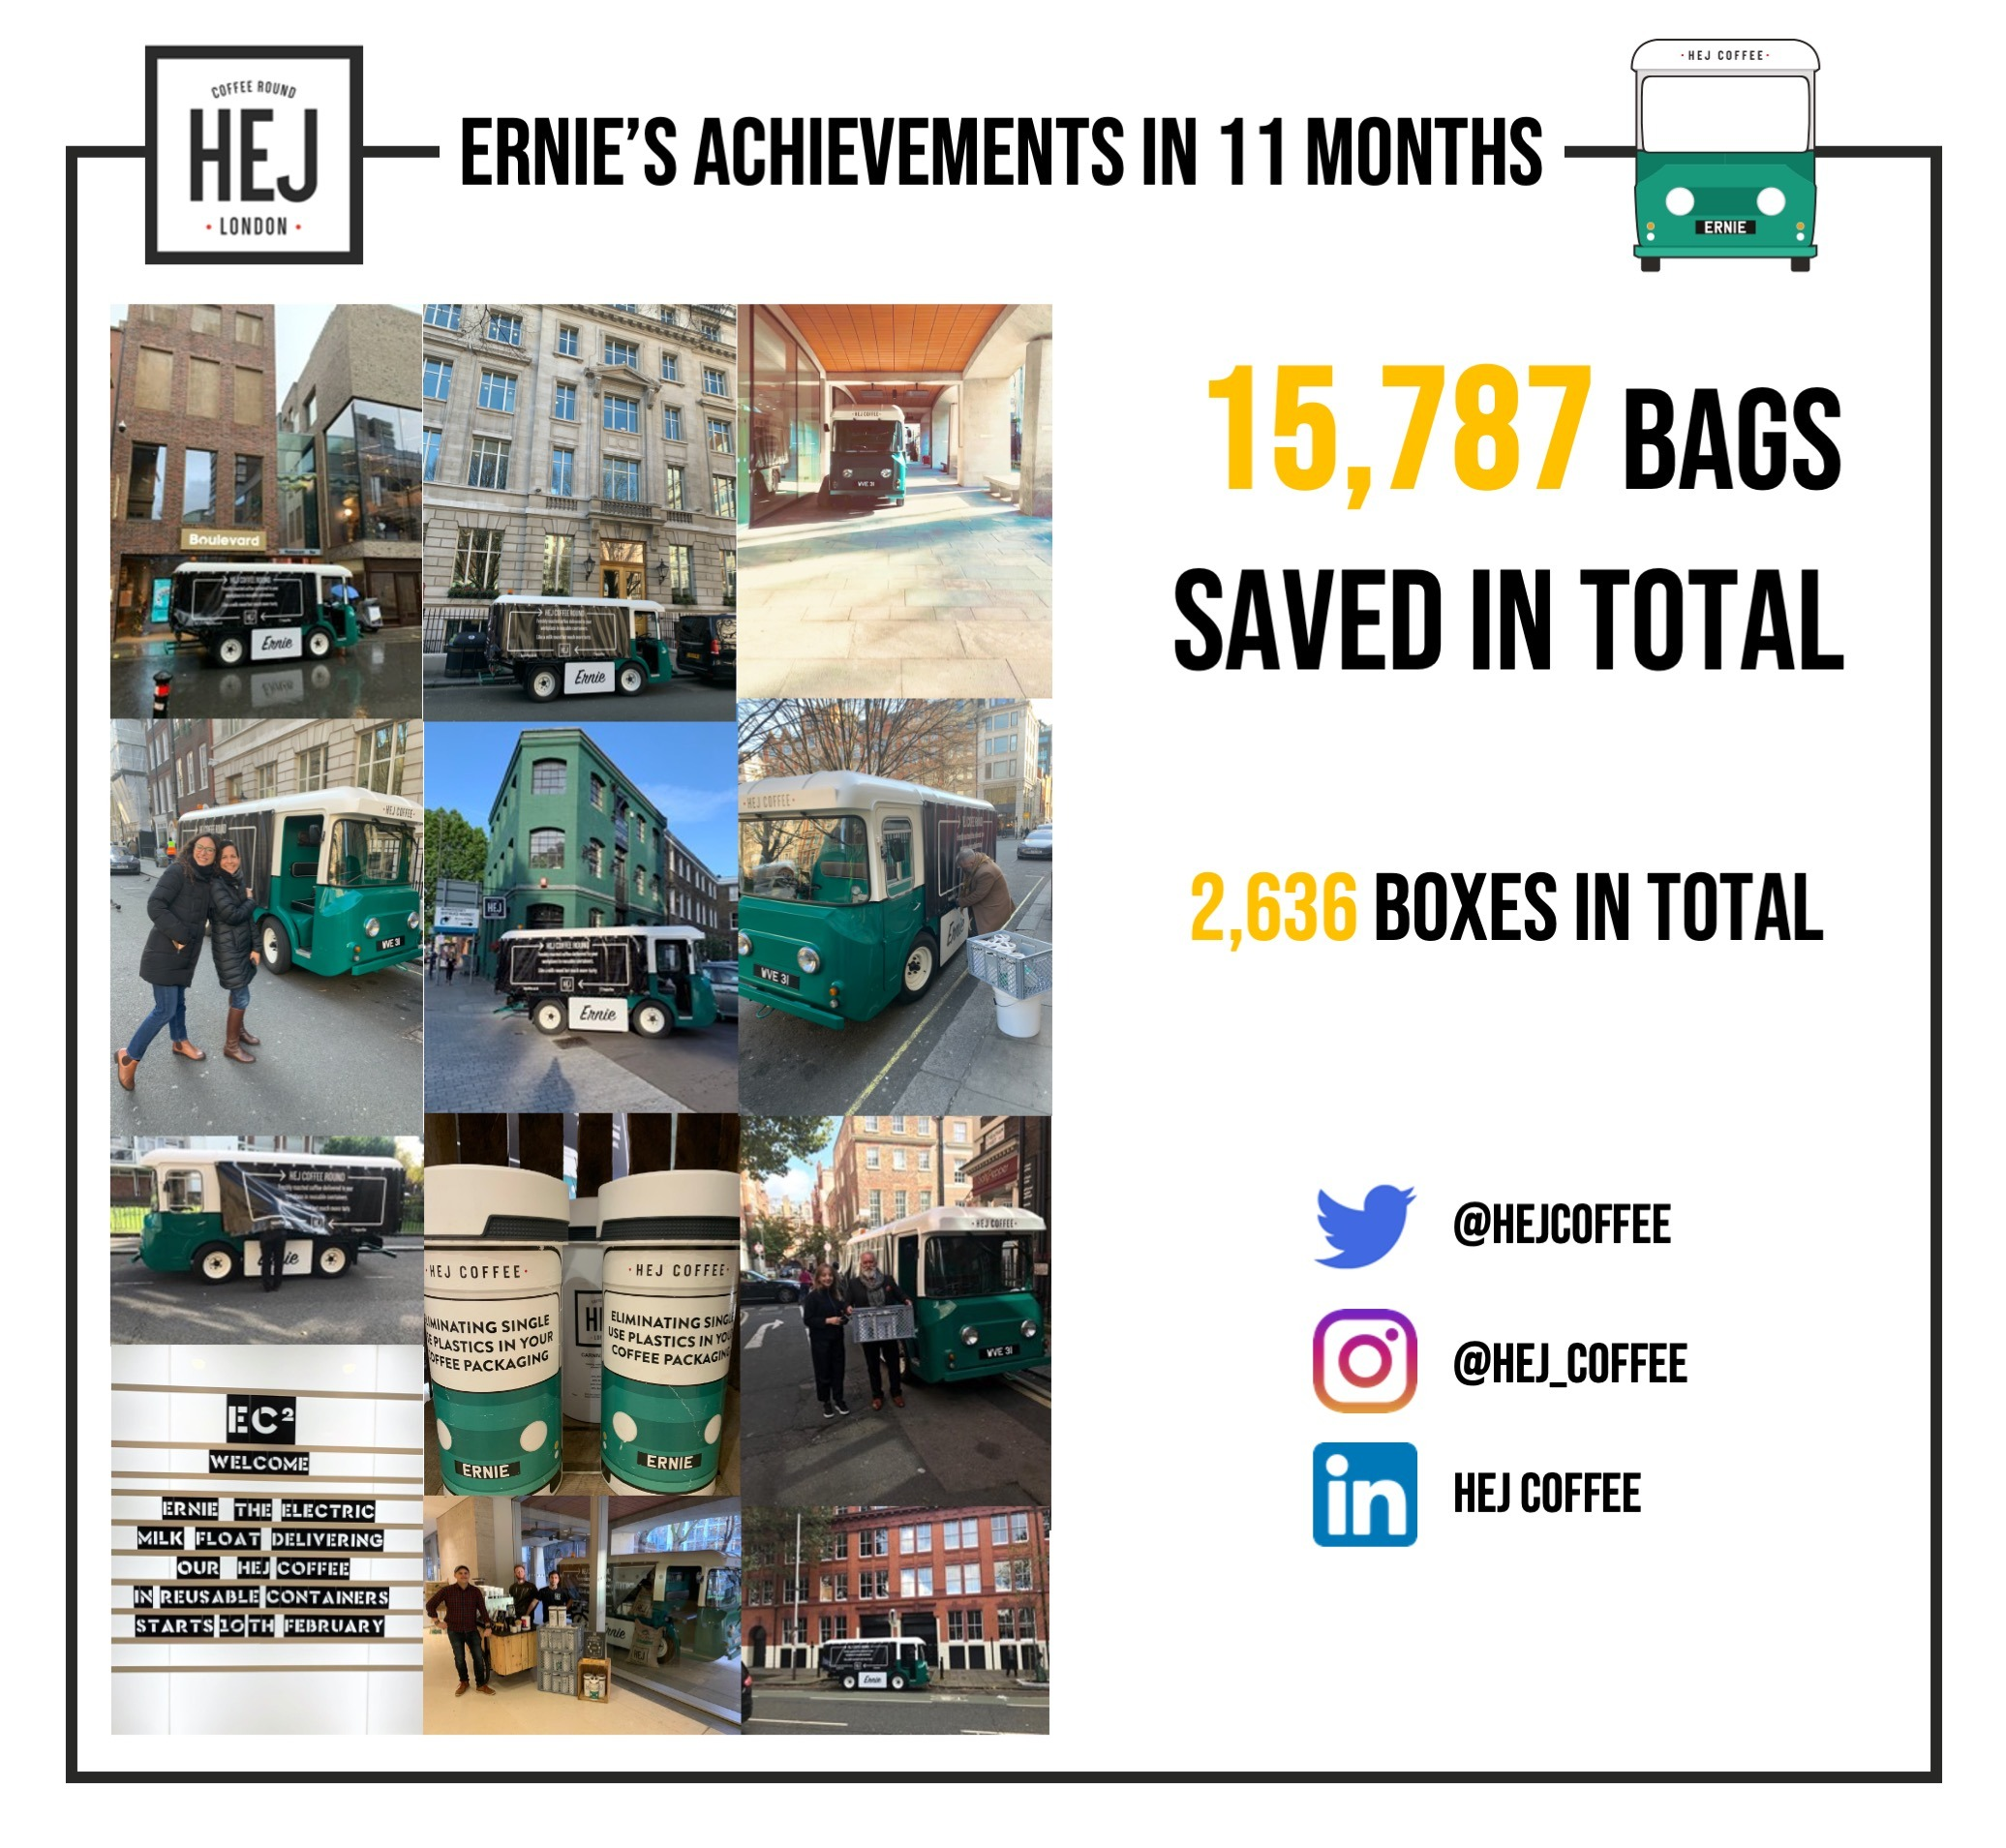 Ernie's 11 month achievements